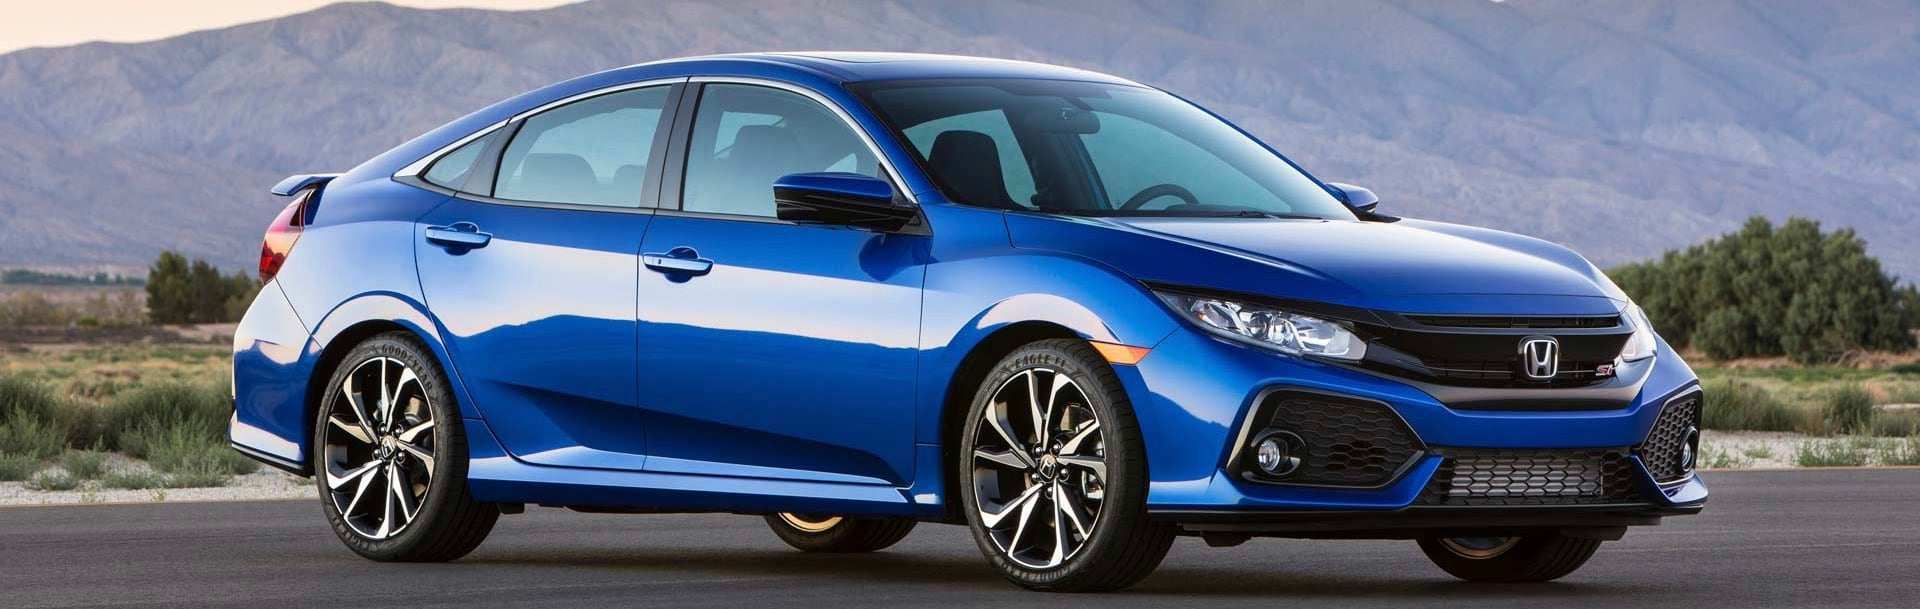 39 Best 2019 Honda Civic Si Sedan Research New